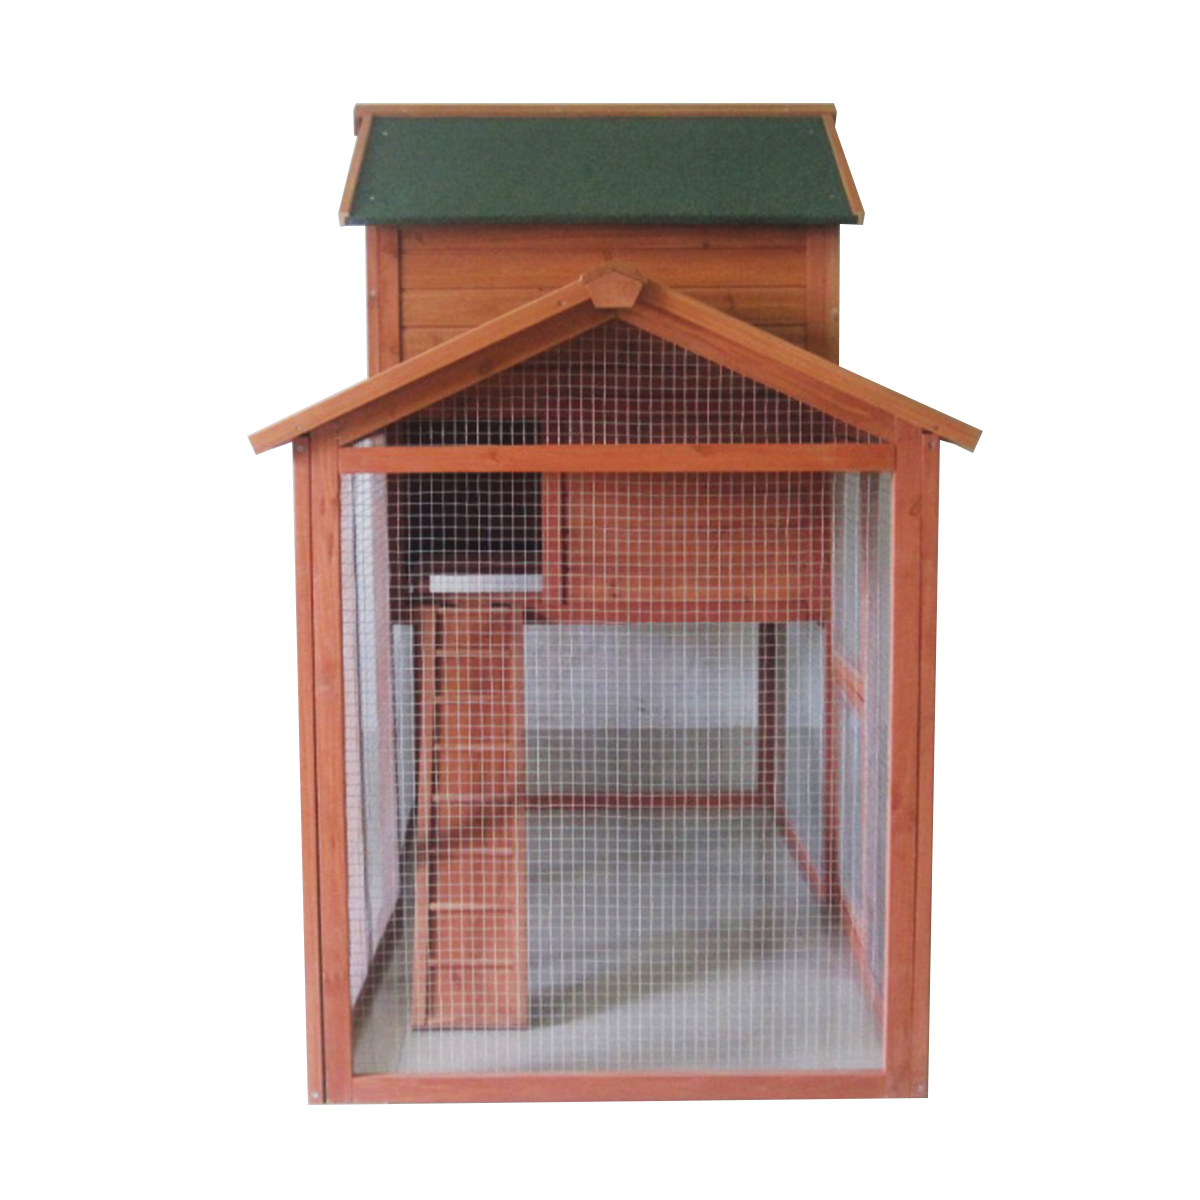 7ft Large Rabbit Hutch With Run Pet House Home Ferret And